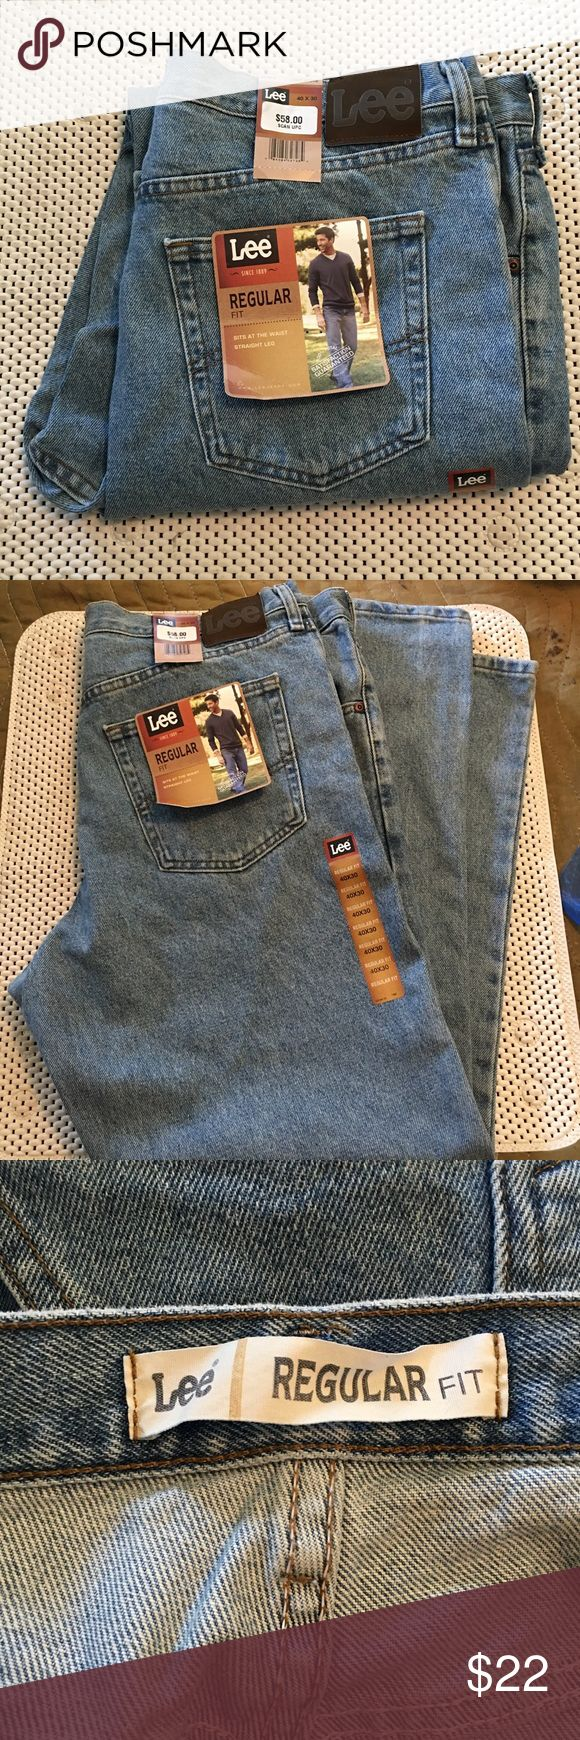 Lee Men's Denim Jeans Regular Fit 40x30 NWT Brand new with tags.  Lee light blue denim 100% cotton jeans.  Regular fit, sits at waist, straight leg.  Size 40 waist by 30 inseam length.  From non-smoking home. Lee Jeans Straight